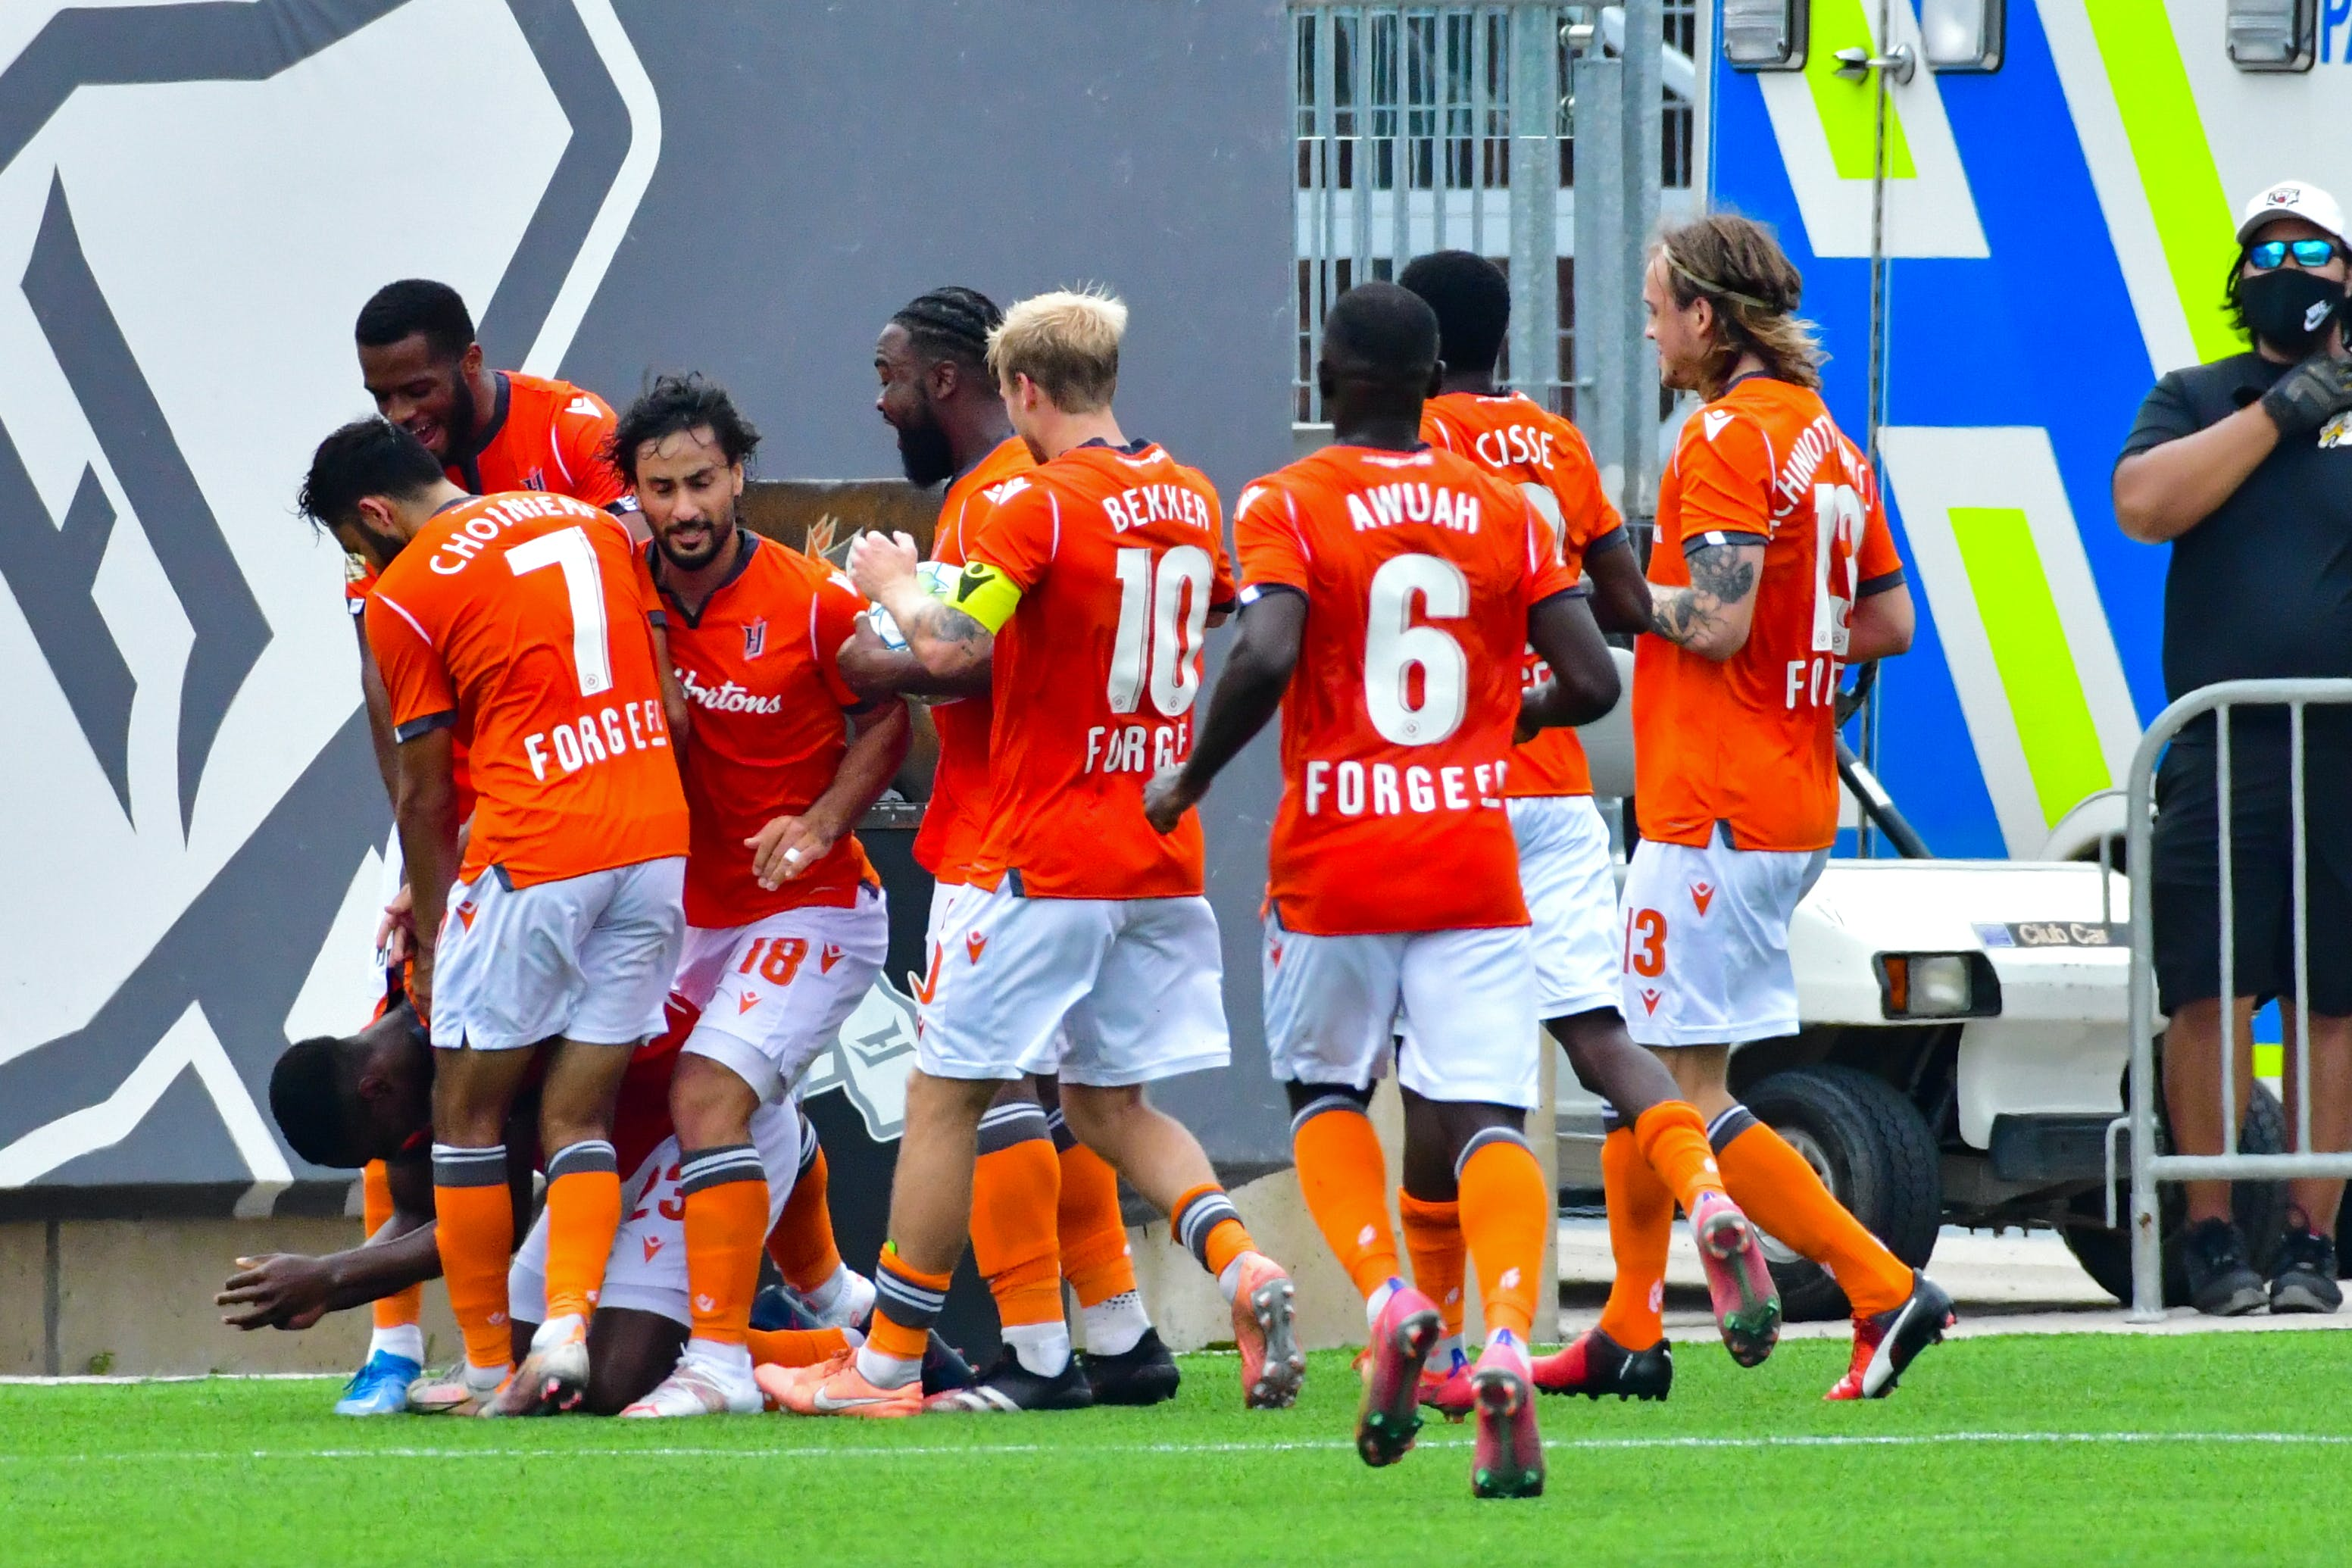 Forge FC celebrate Kwame Awuah's goal in the 96th minute in a 1-1 draw with HFX Wanderers on Sunday afternoon in Hamilton, Ont. - Forge FC Hamilton / Ryan McCullough